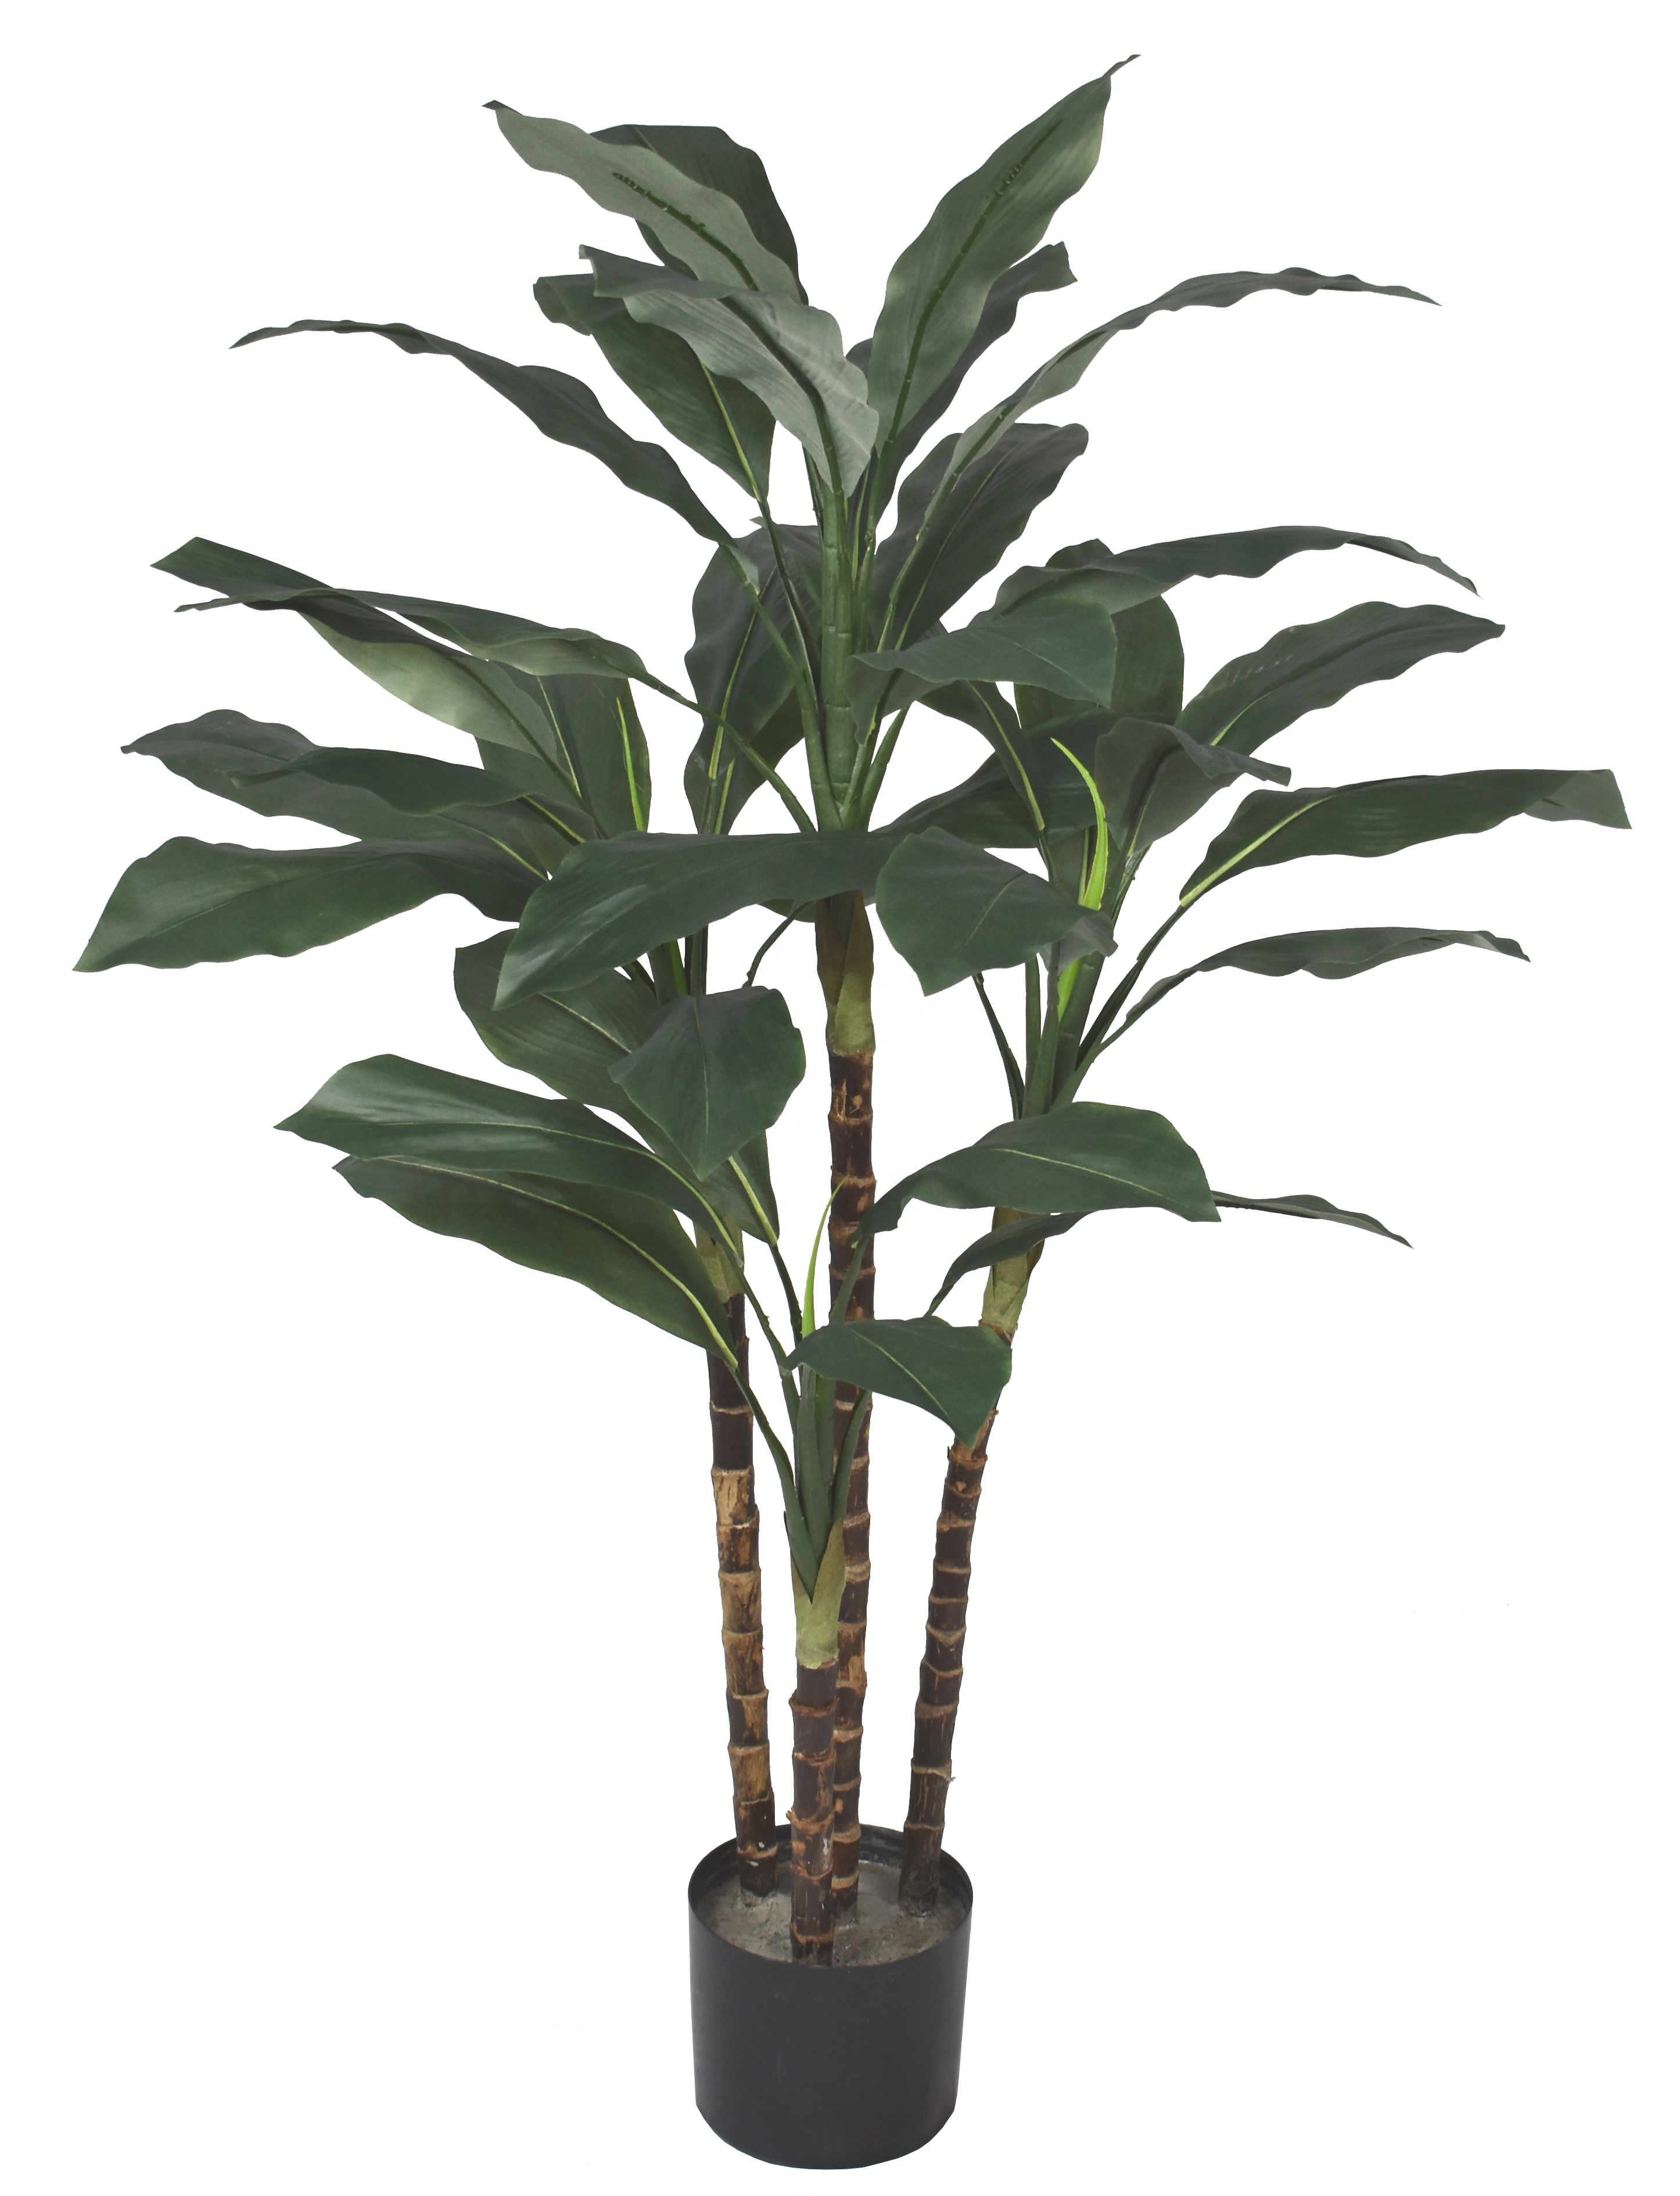 SUN FUNG own factory good quality Outdoor Artificial Natural Trunk fiddle leave Tree Amazon supplier